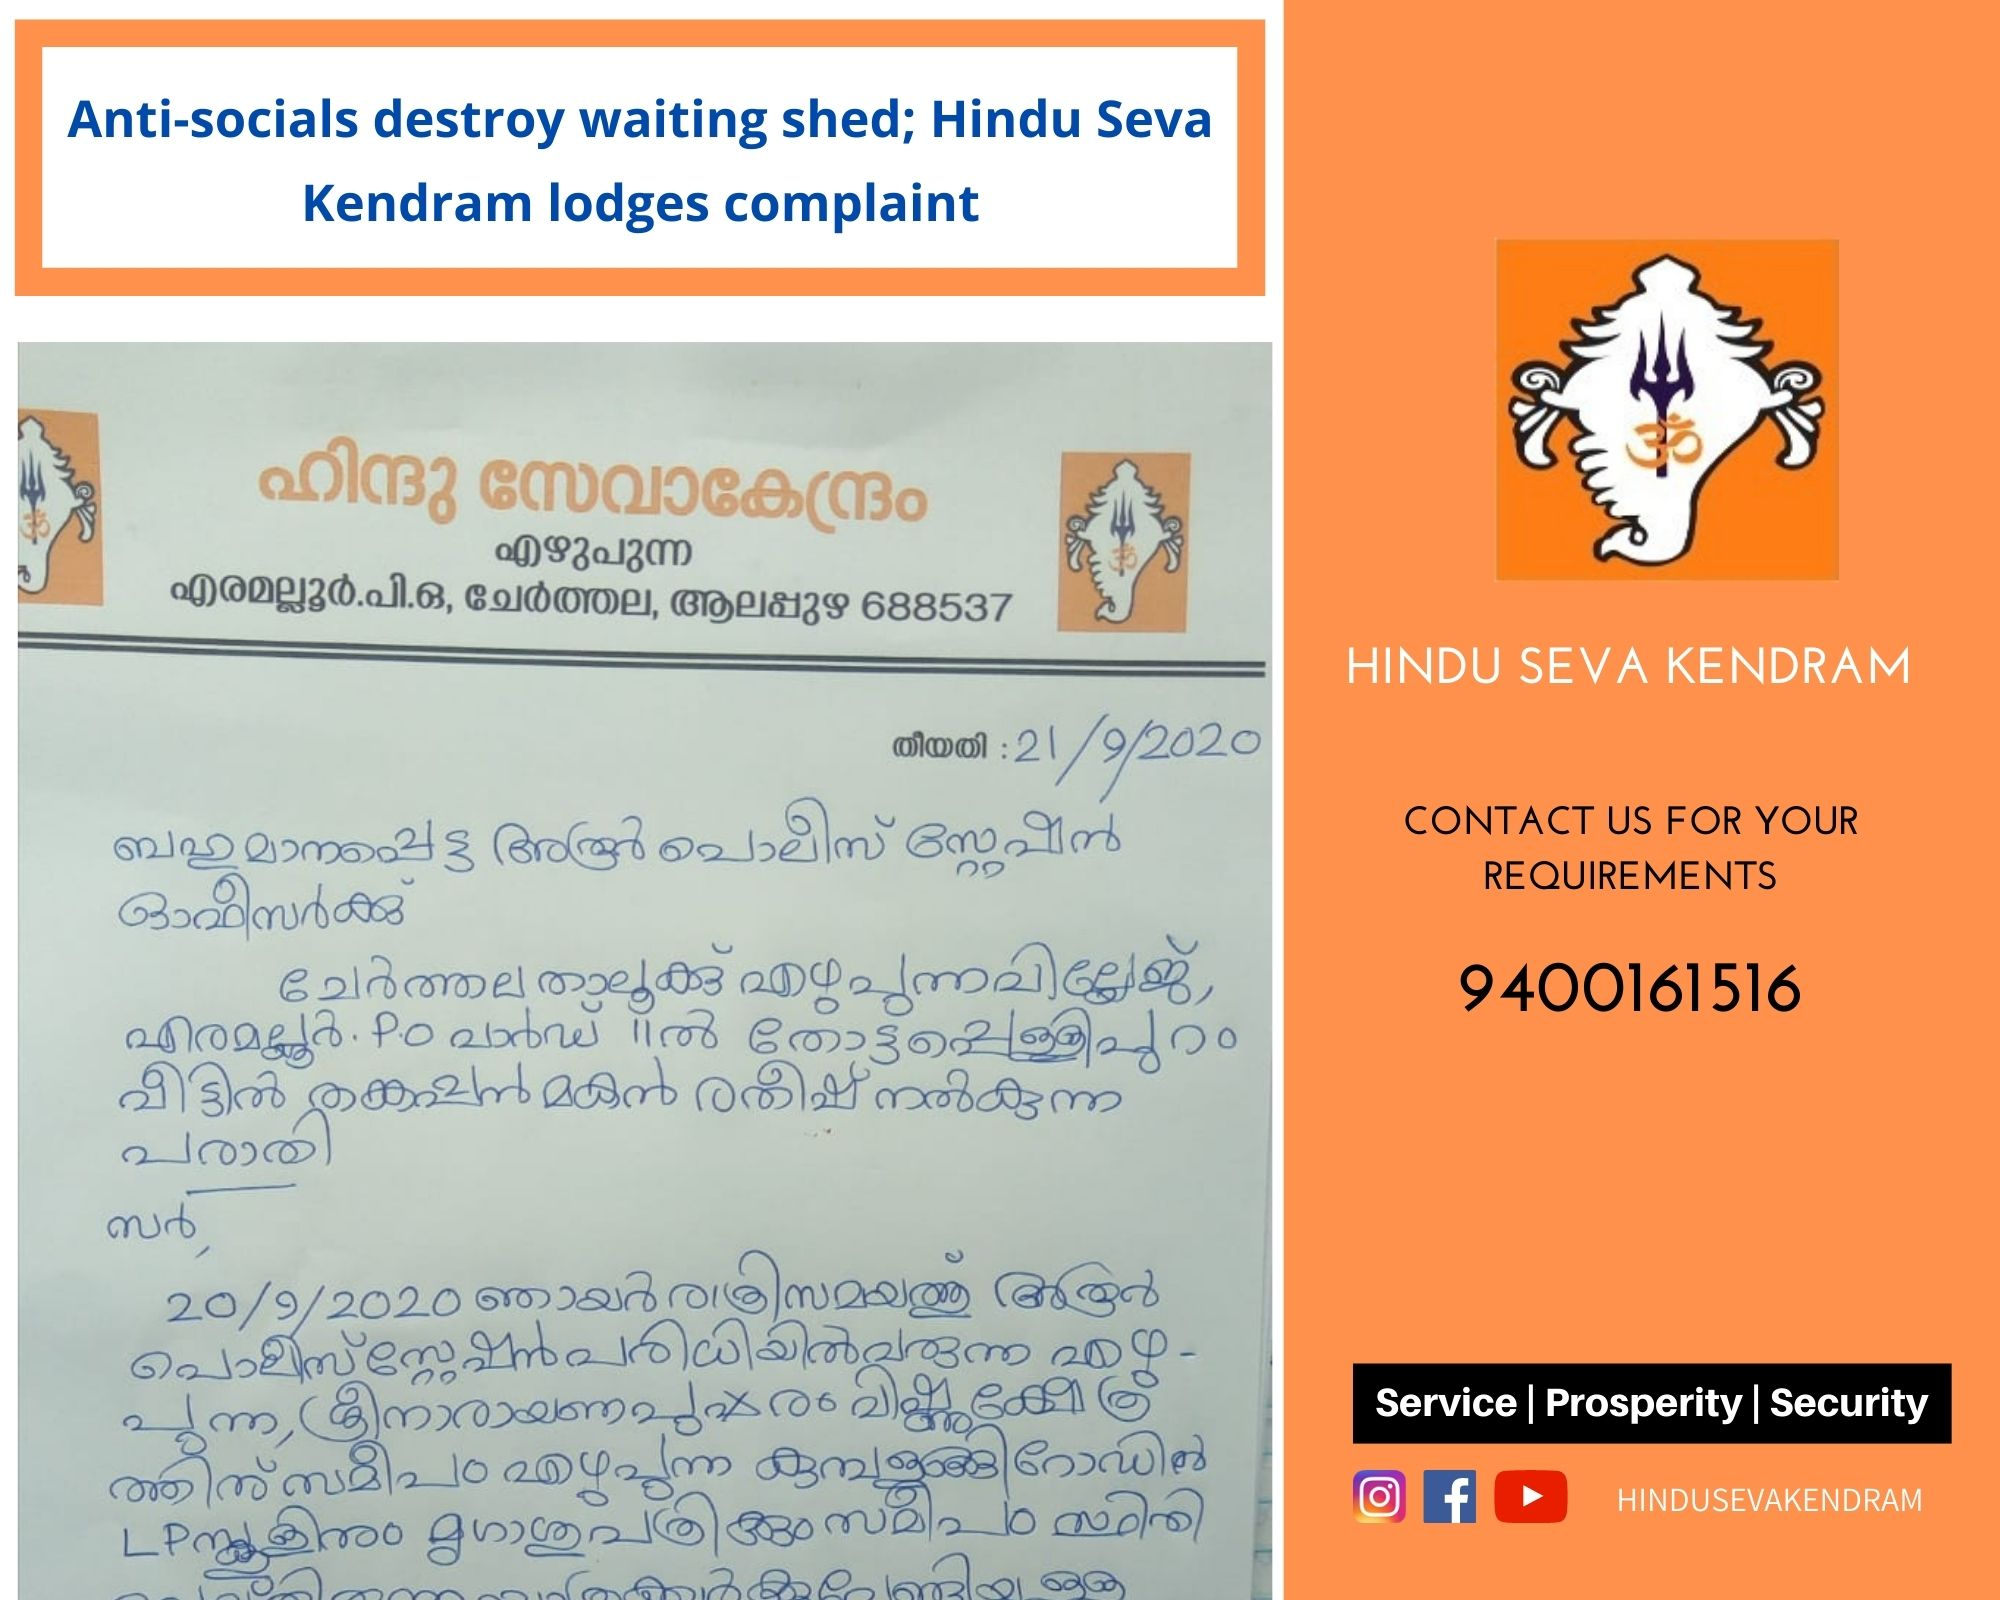 Anti-socials destroy waiting shed; Hindu Seva Kendram lodges complaint